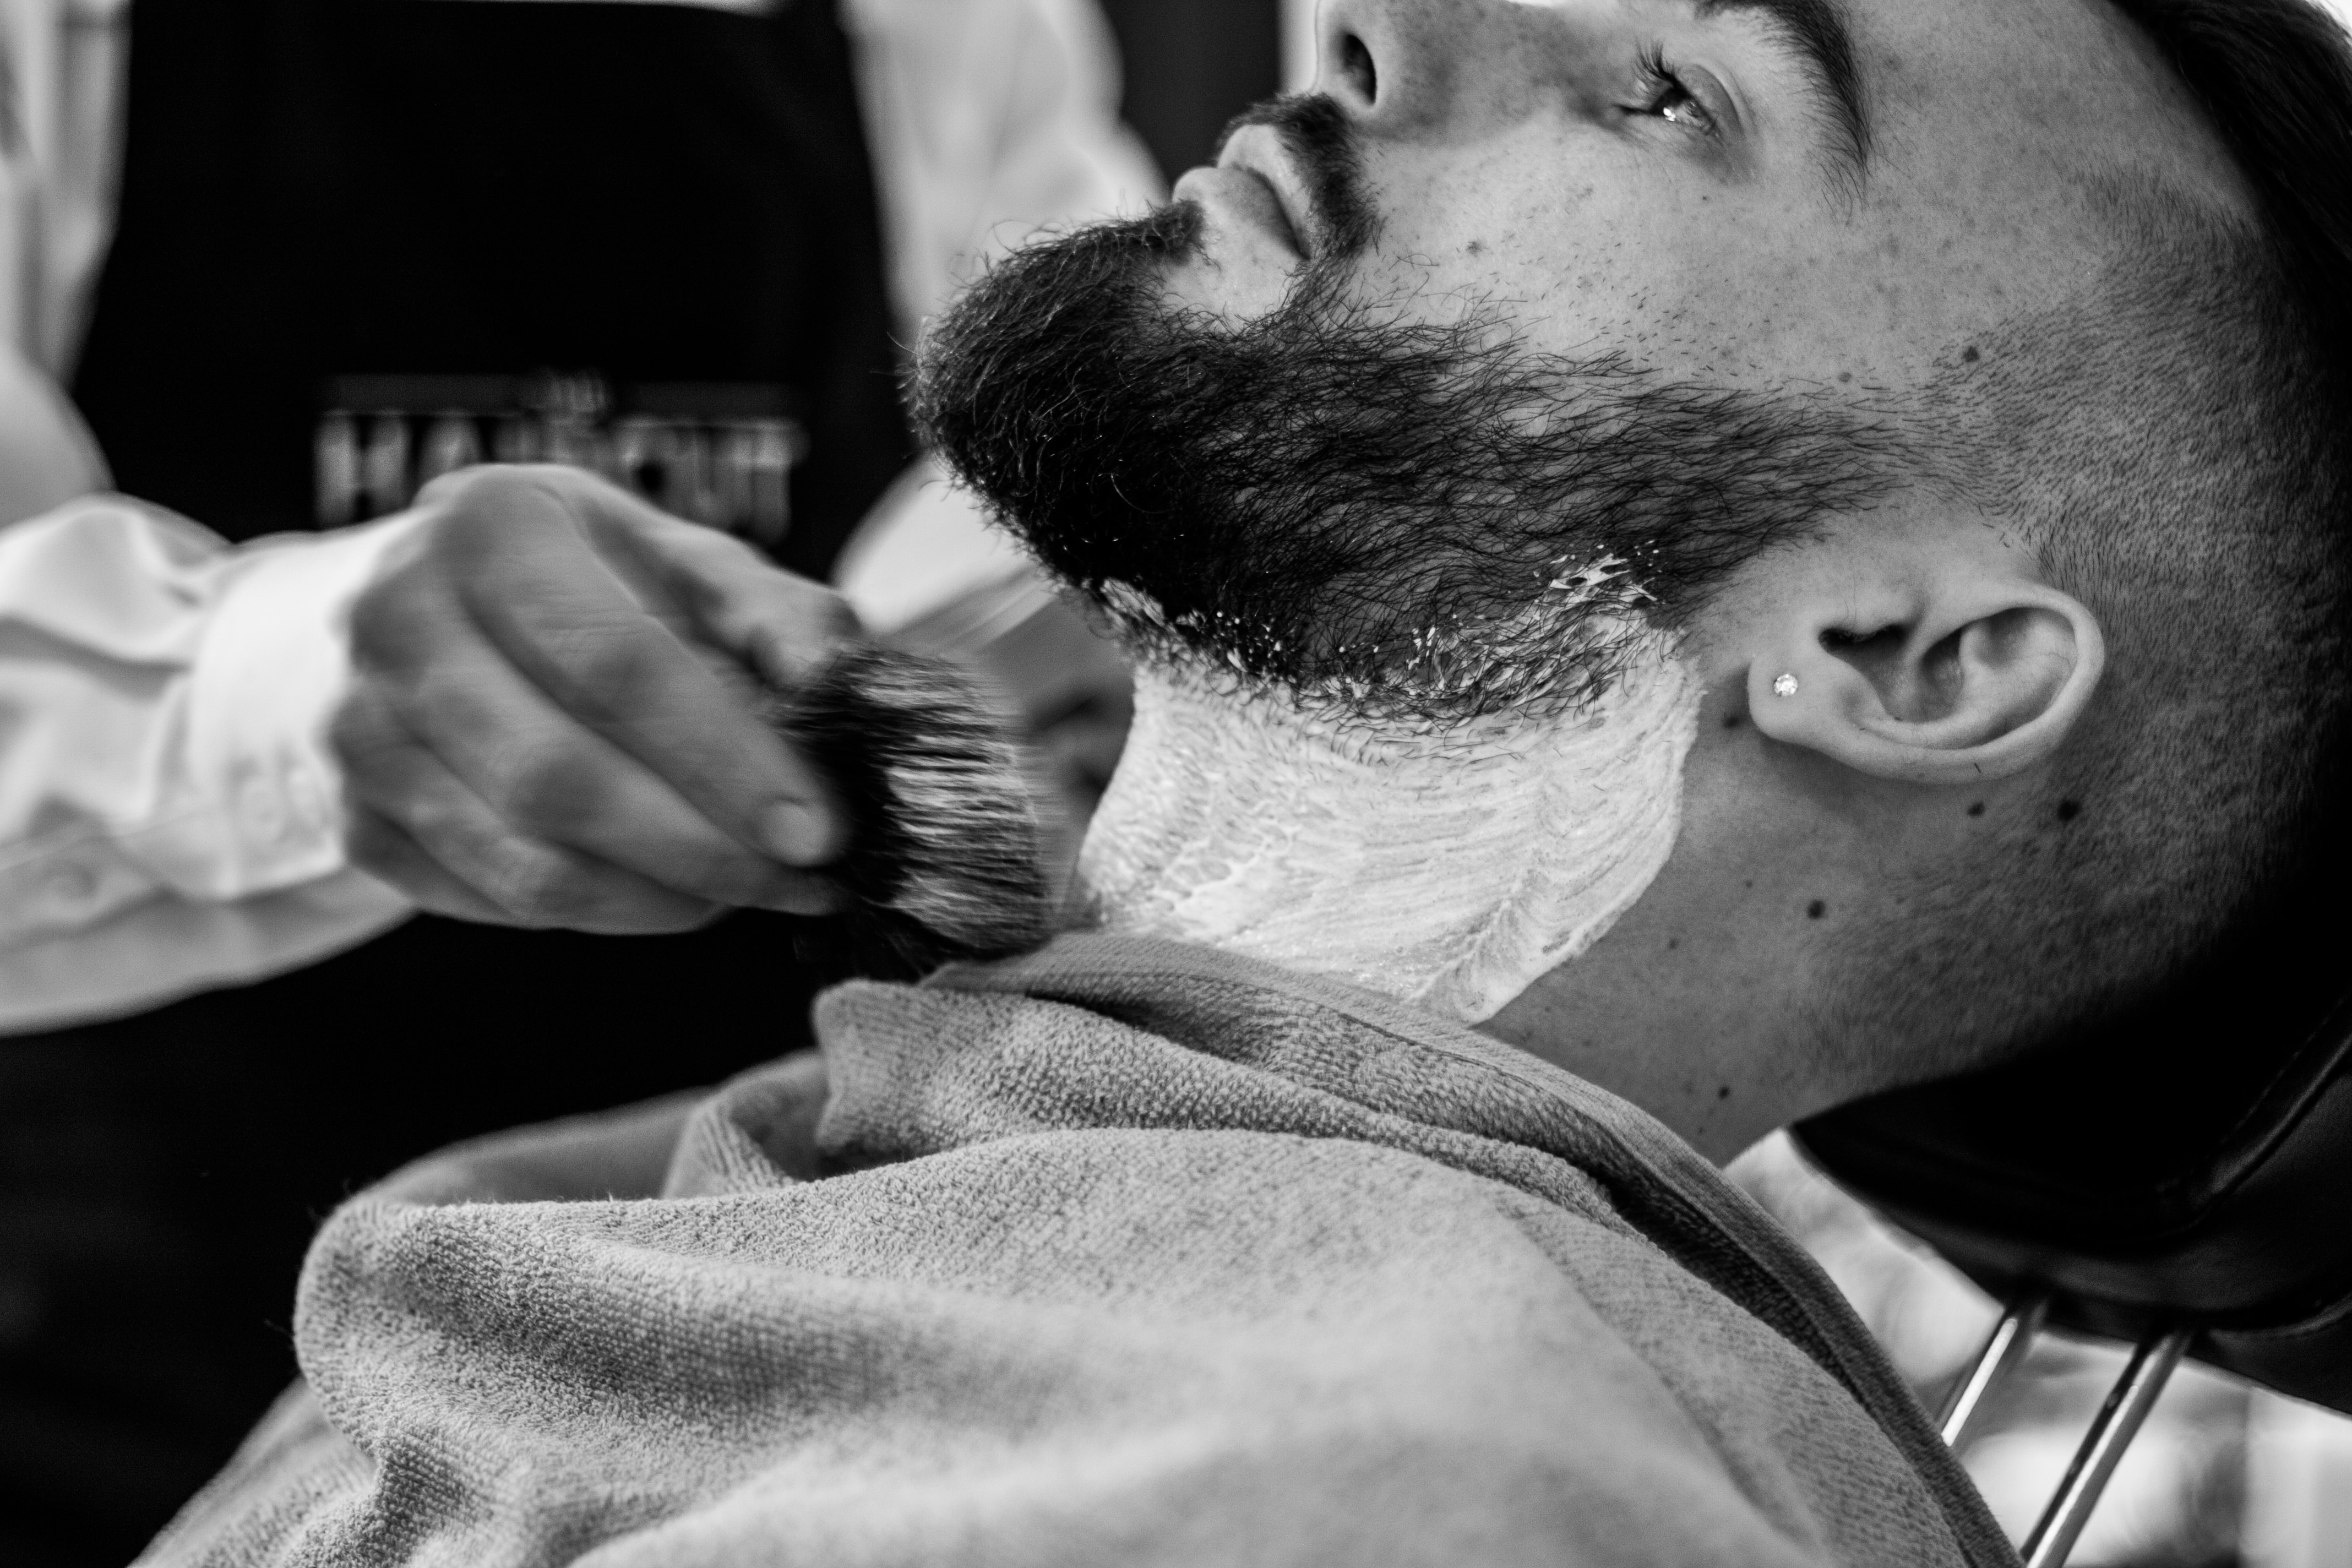 grayscale photo of man shaving his beard